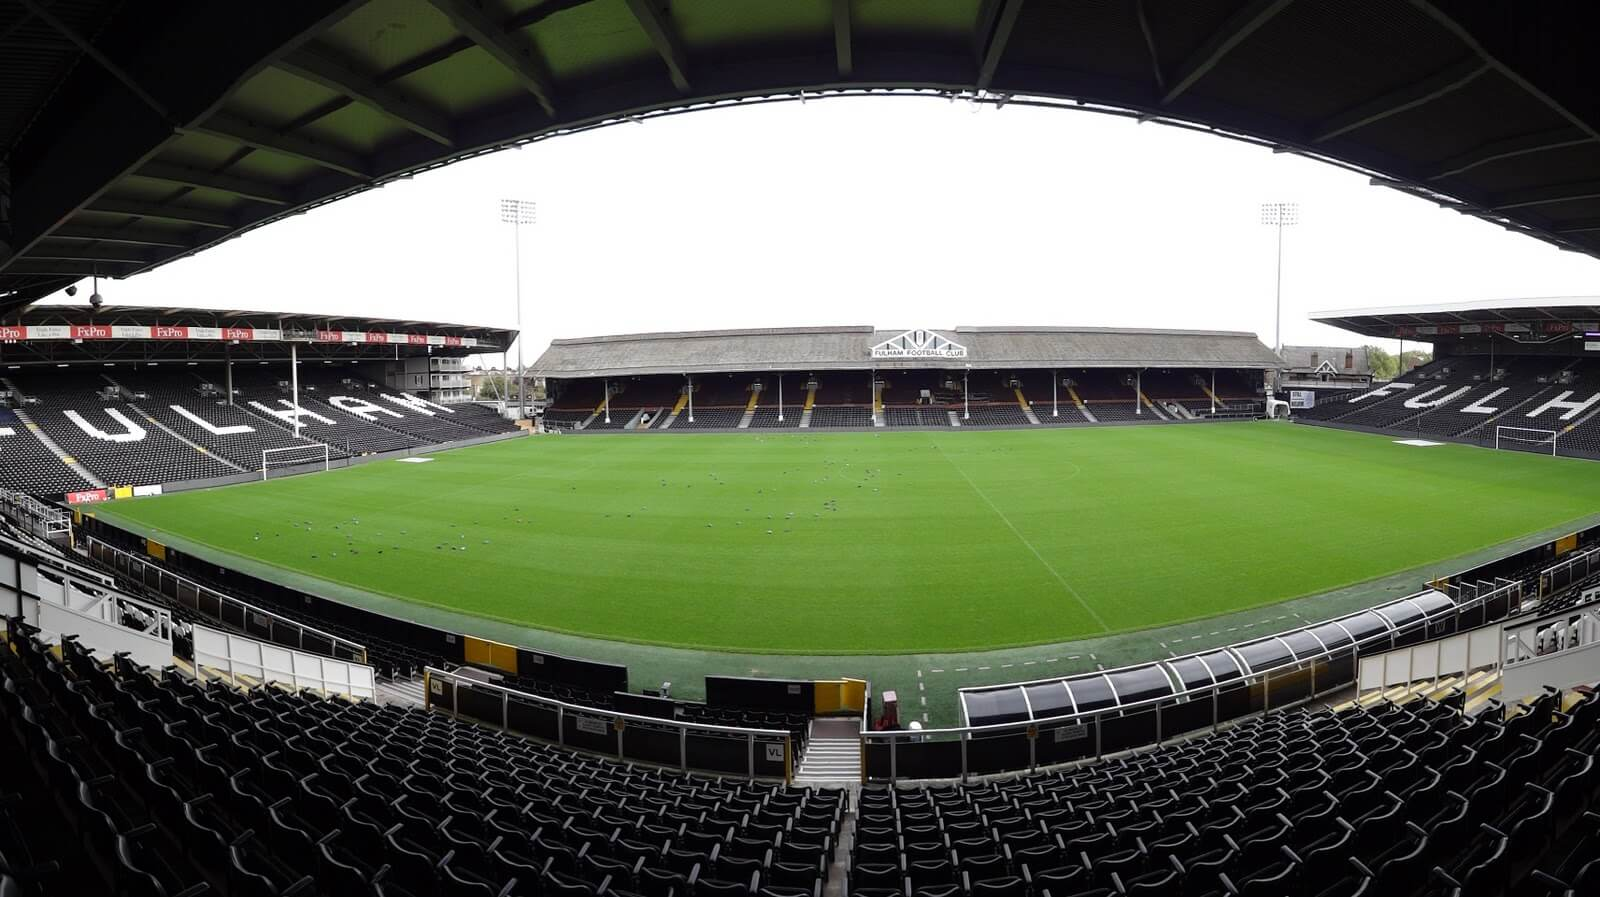 Football In Craven Cottage Football Ticket Net